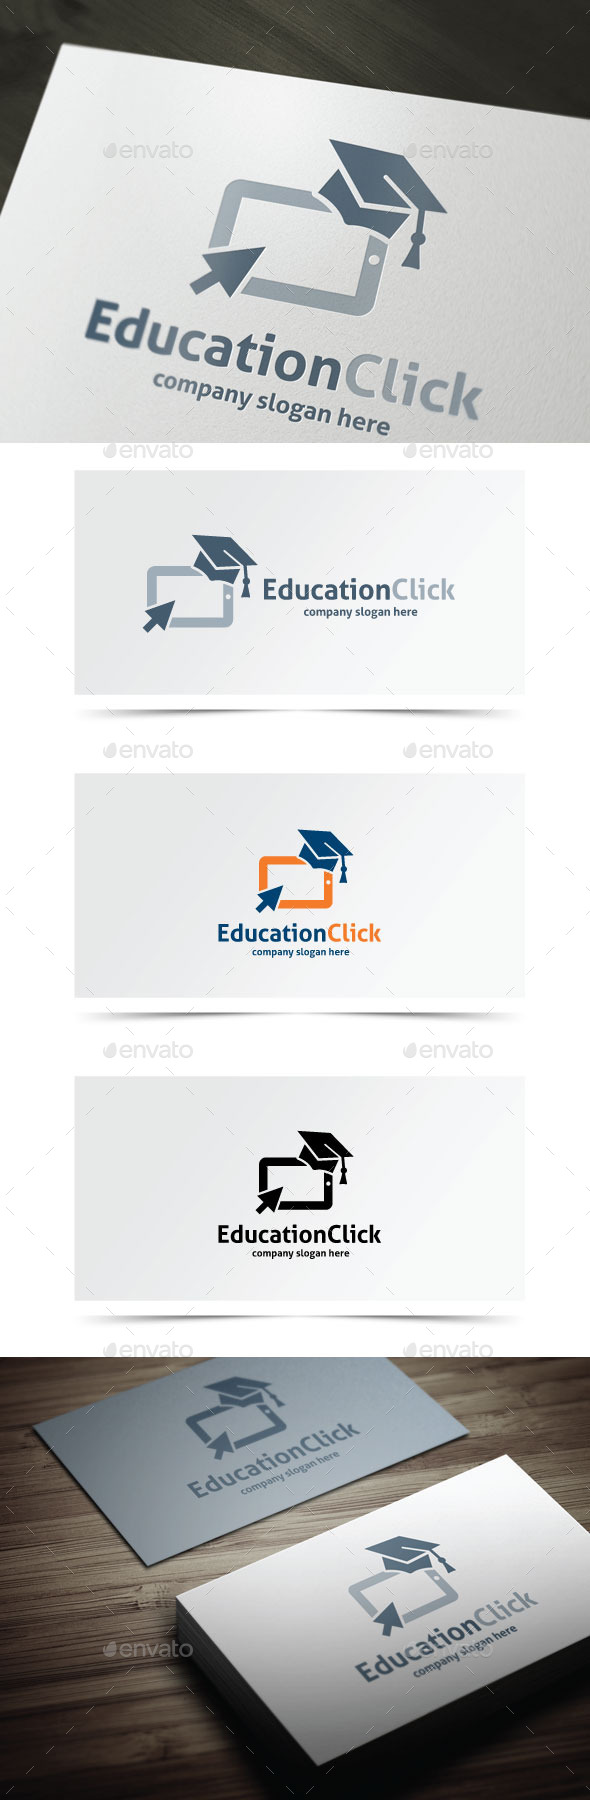 GraphicRiver Education Click 10468282